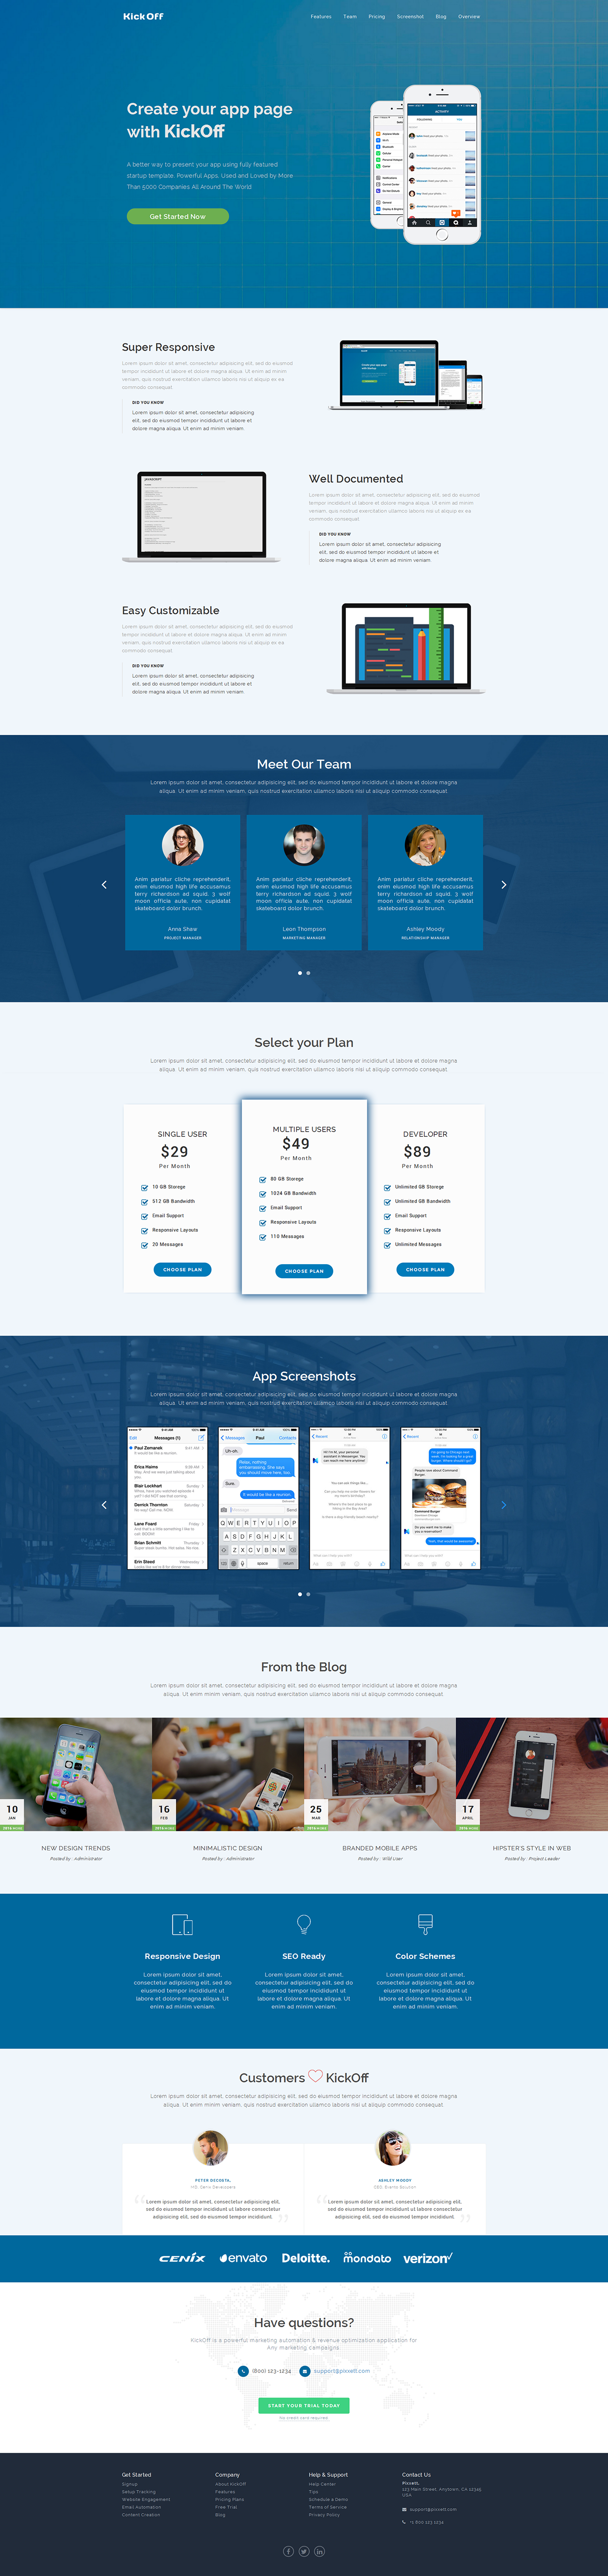 KickOff - Responsive Startup Landing Pages by PIXXET | ThemeForest